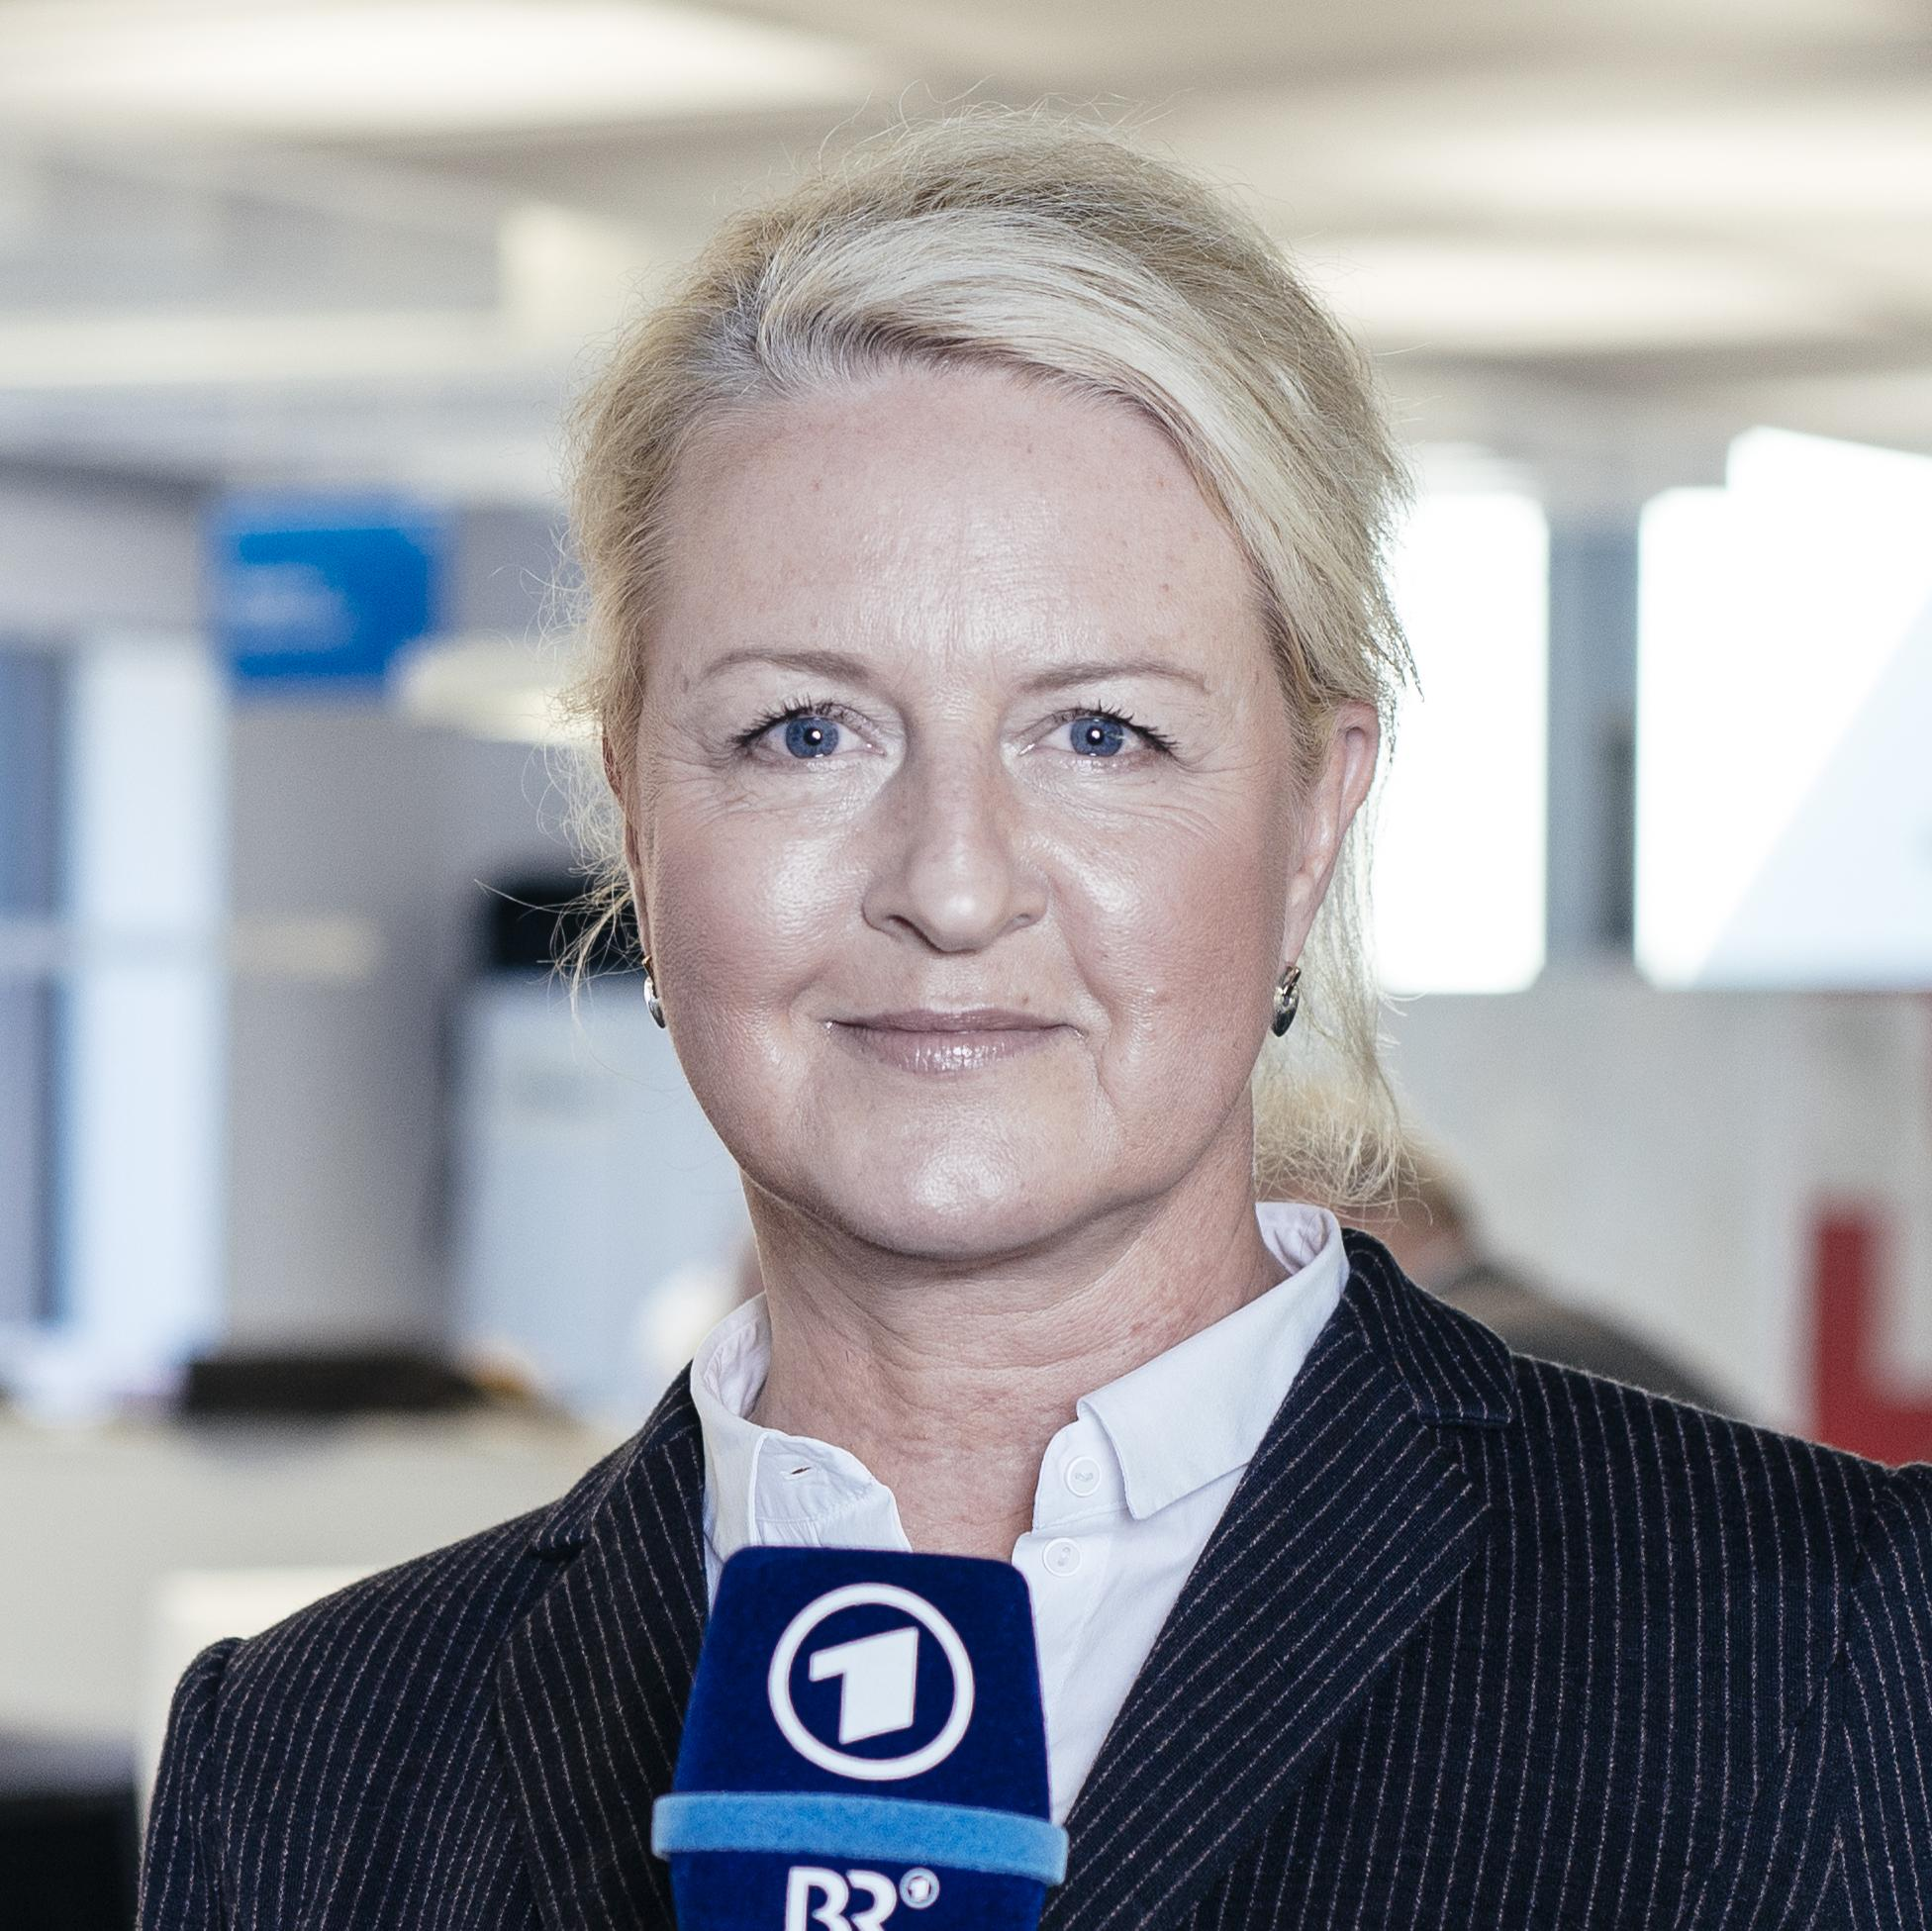 Gisela Staiger